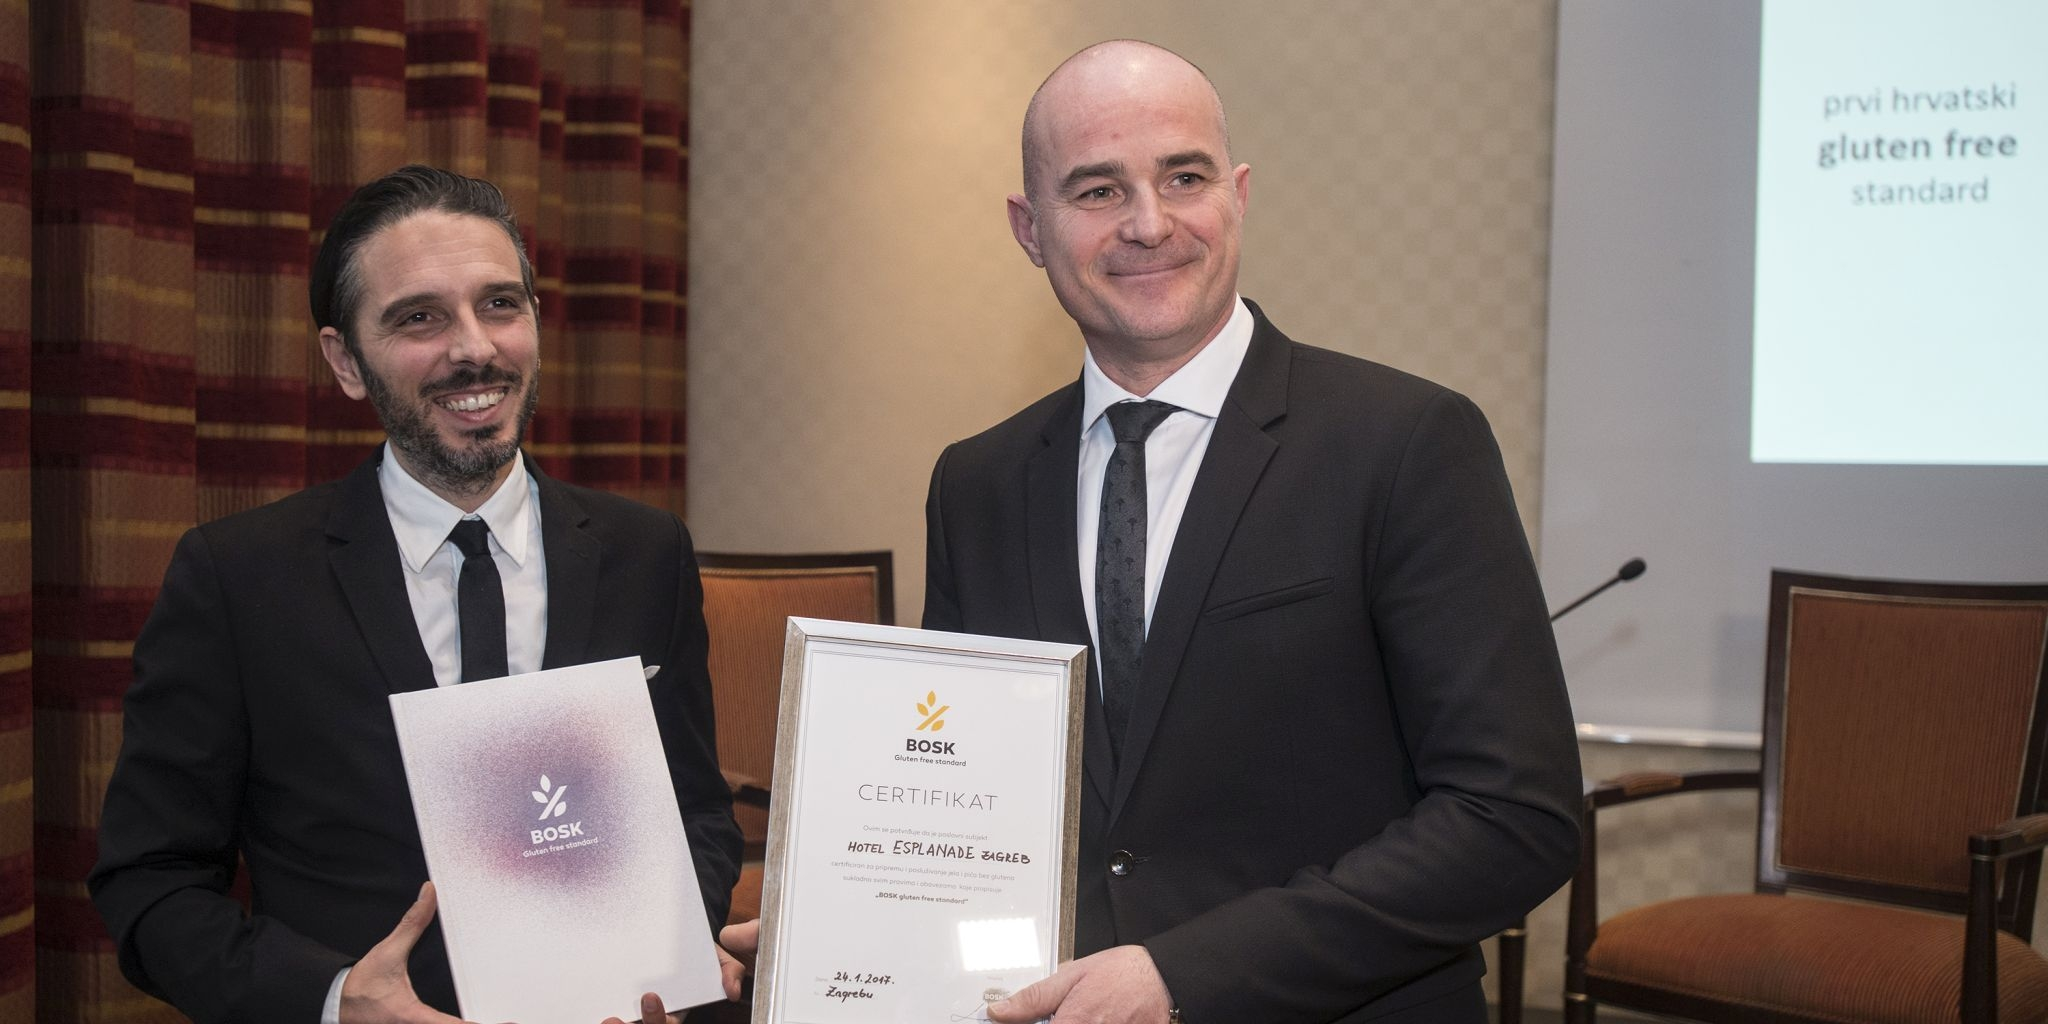 Croatia's Very First BOSK Gluten-Free Standard Awarded to Zagreb's Hotel Esplanade